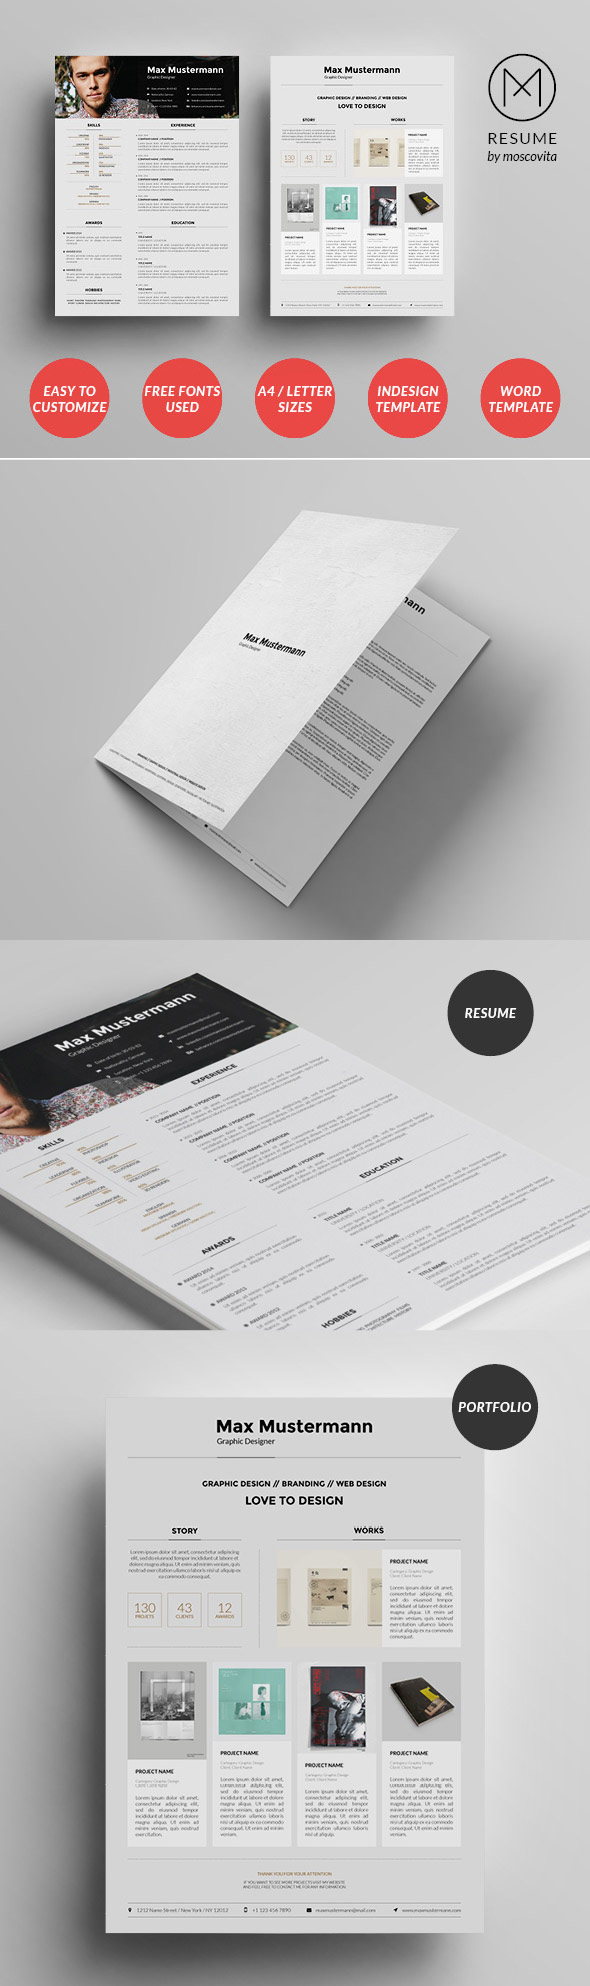 creative cv resume templates cover letter portfolio structured creative resume template design